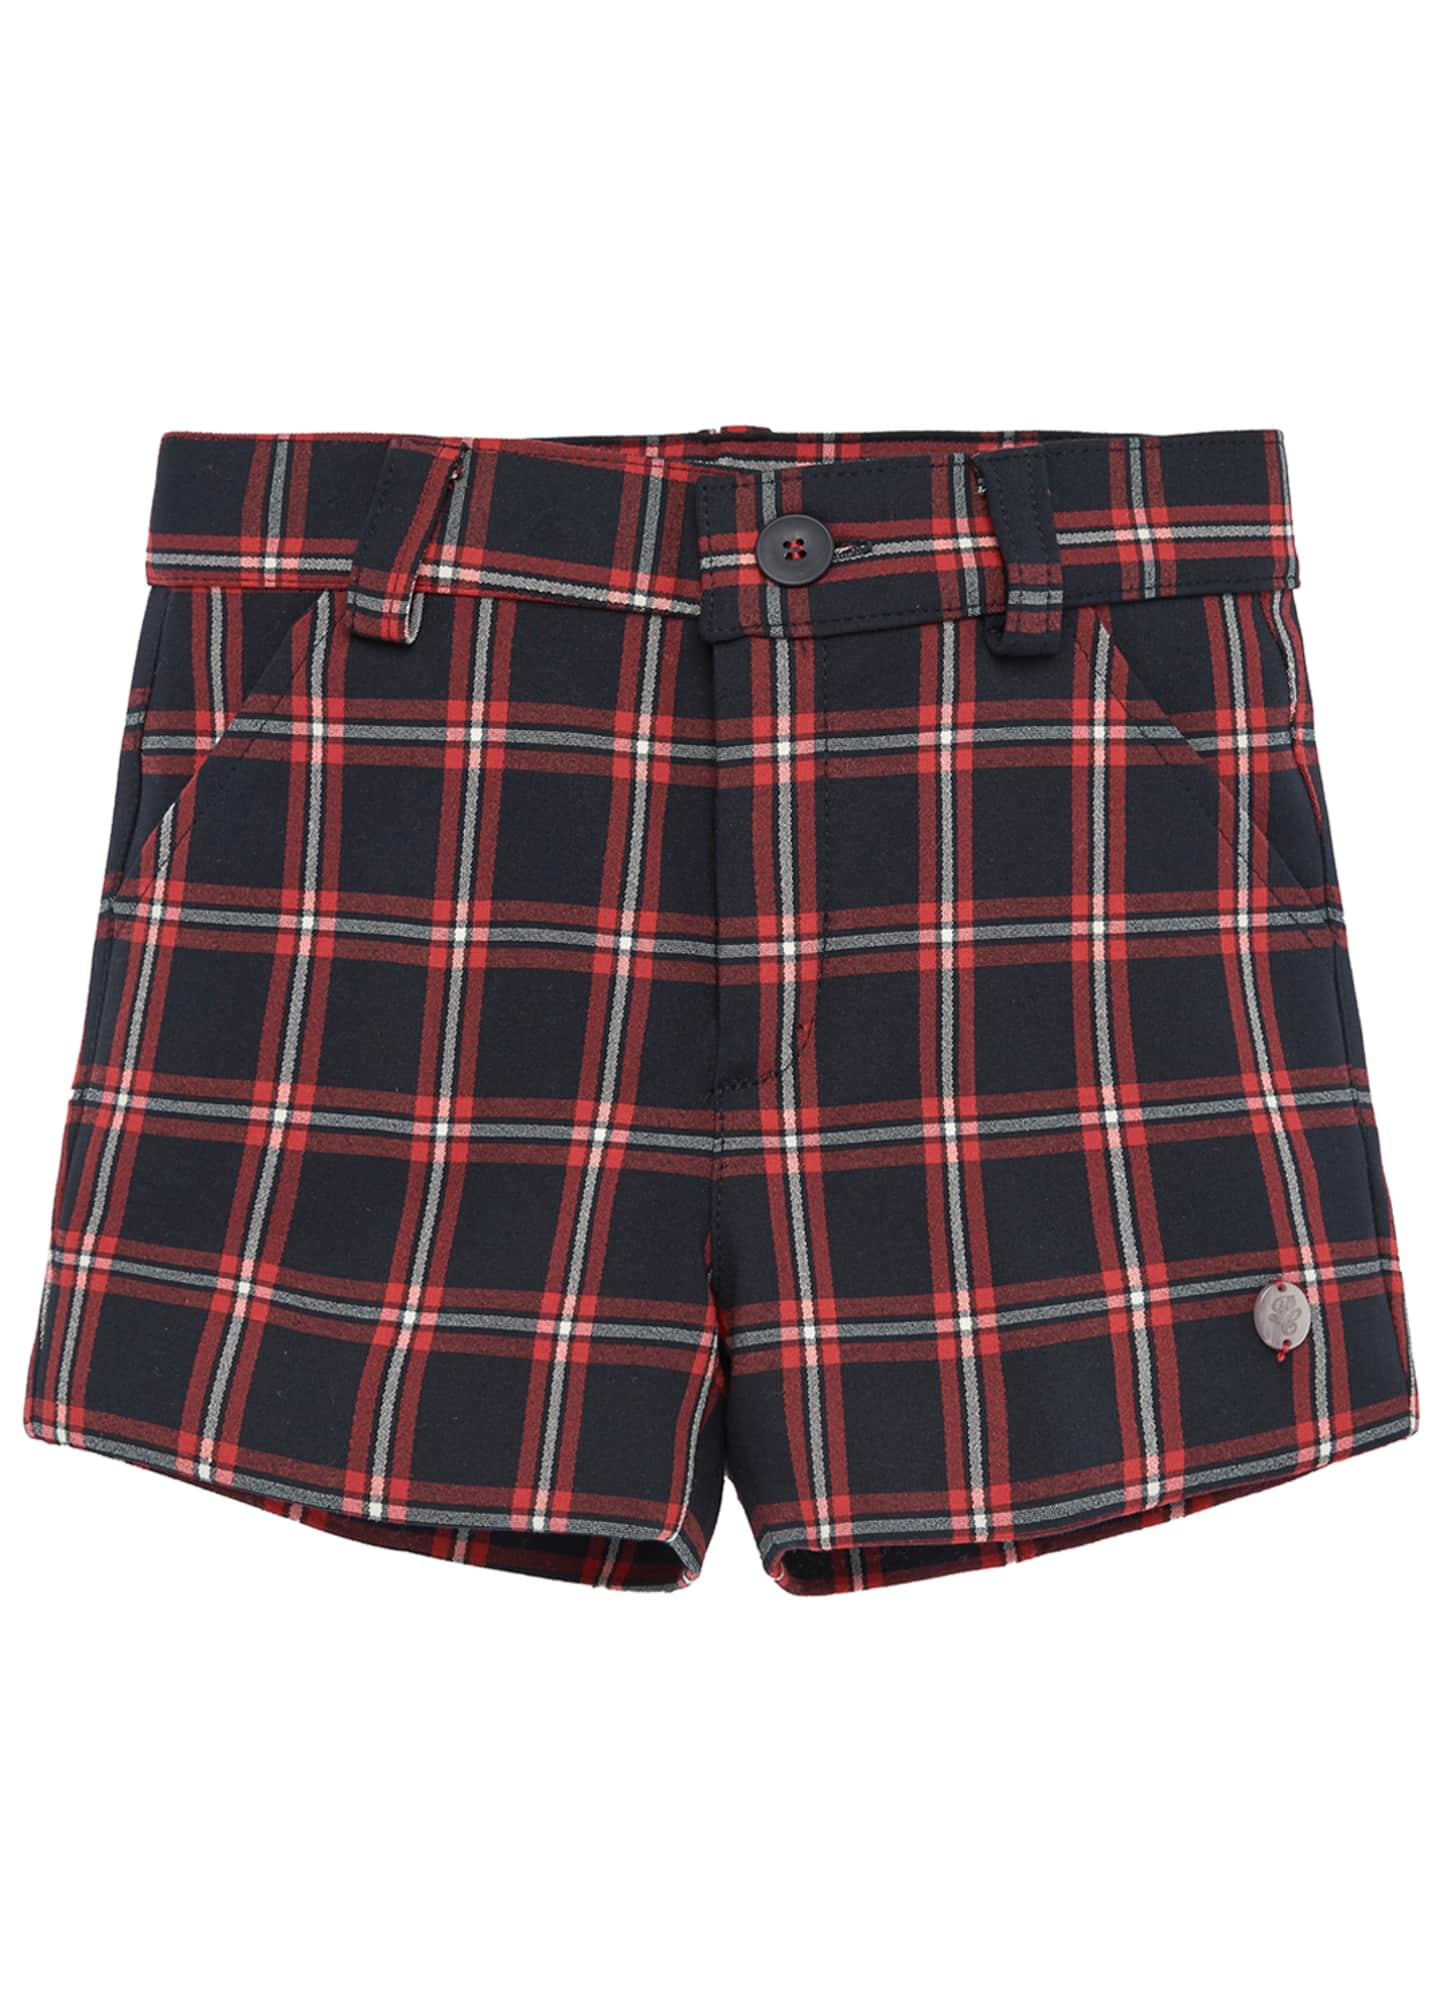 Image 1 of 3: Boy's Check Shorts, Size 2-4